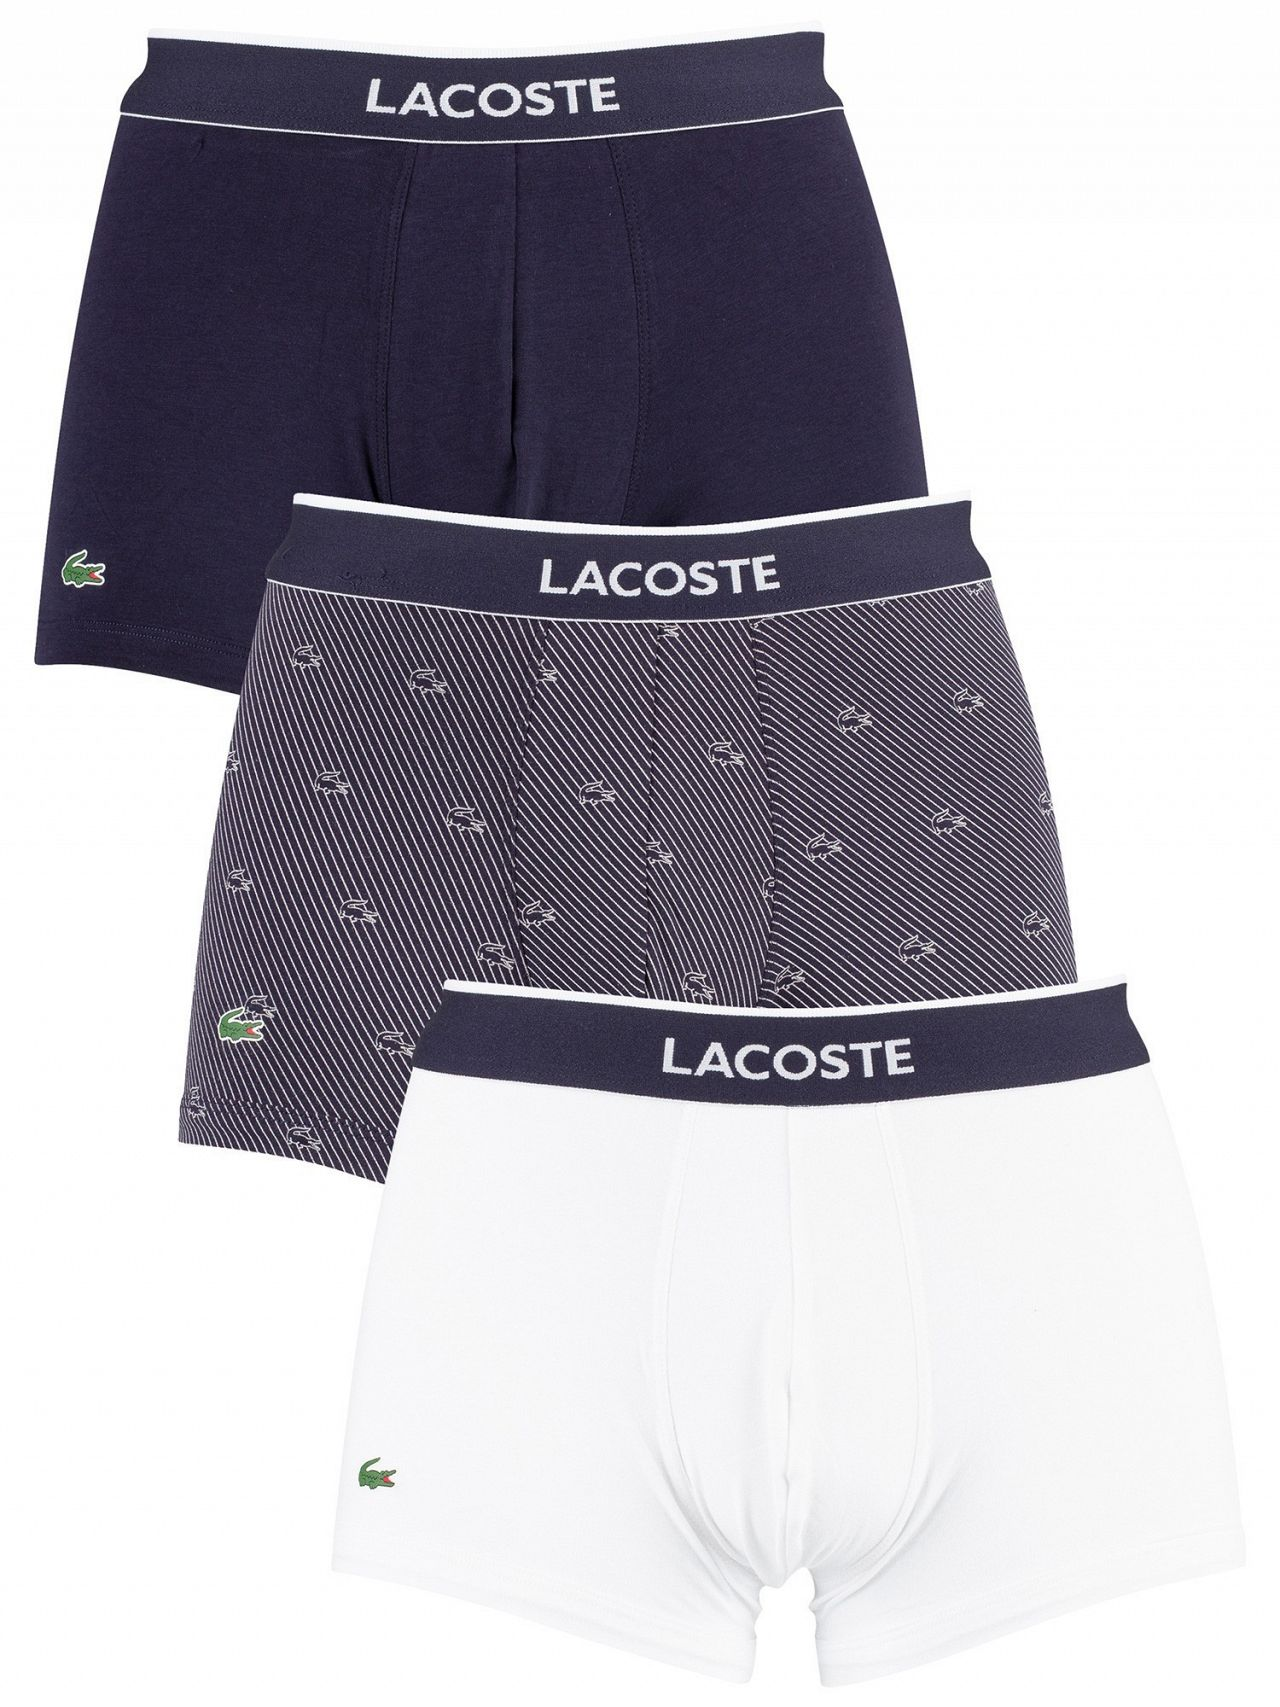 b00fa719 Lacoste White/Striped/Navy 3 Pack Cotton Stretch Trunks